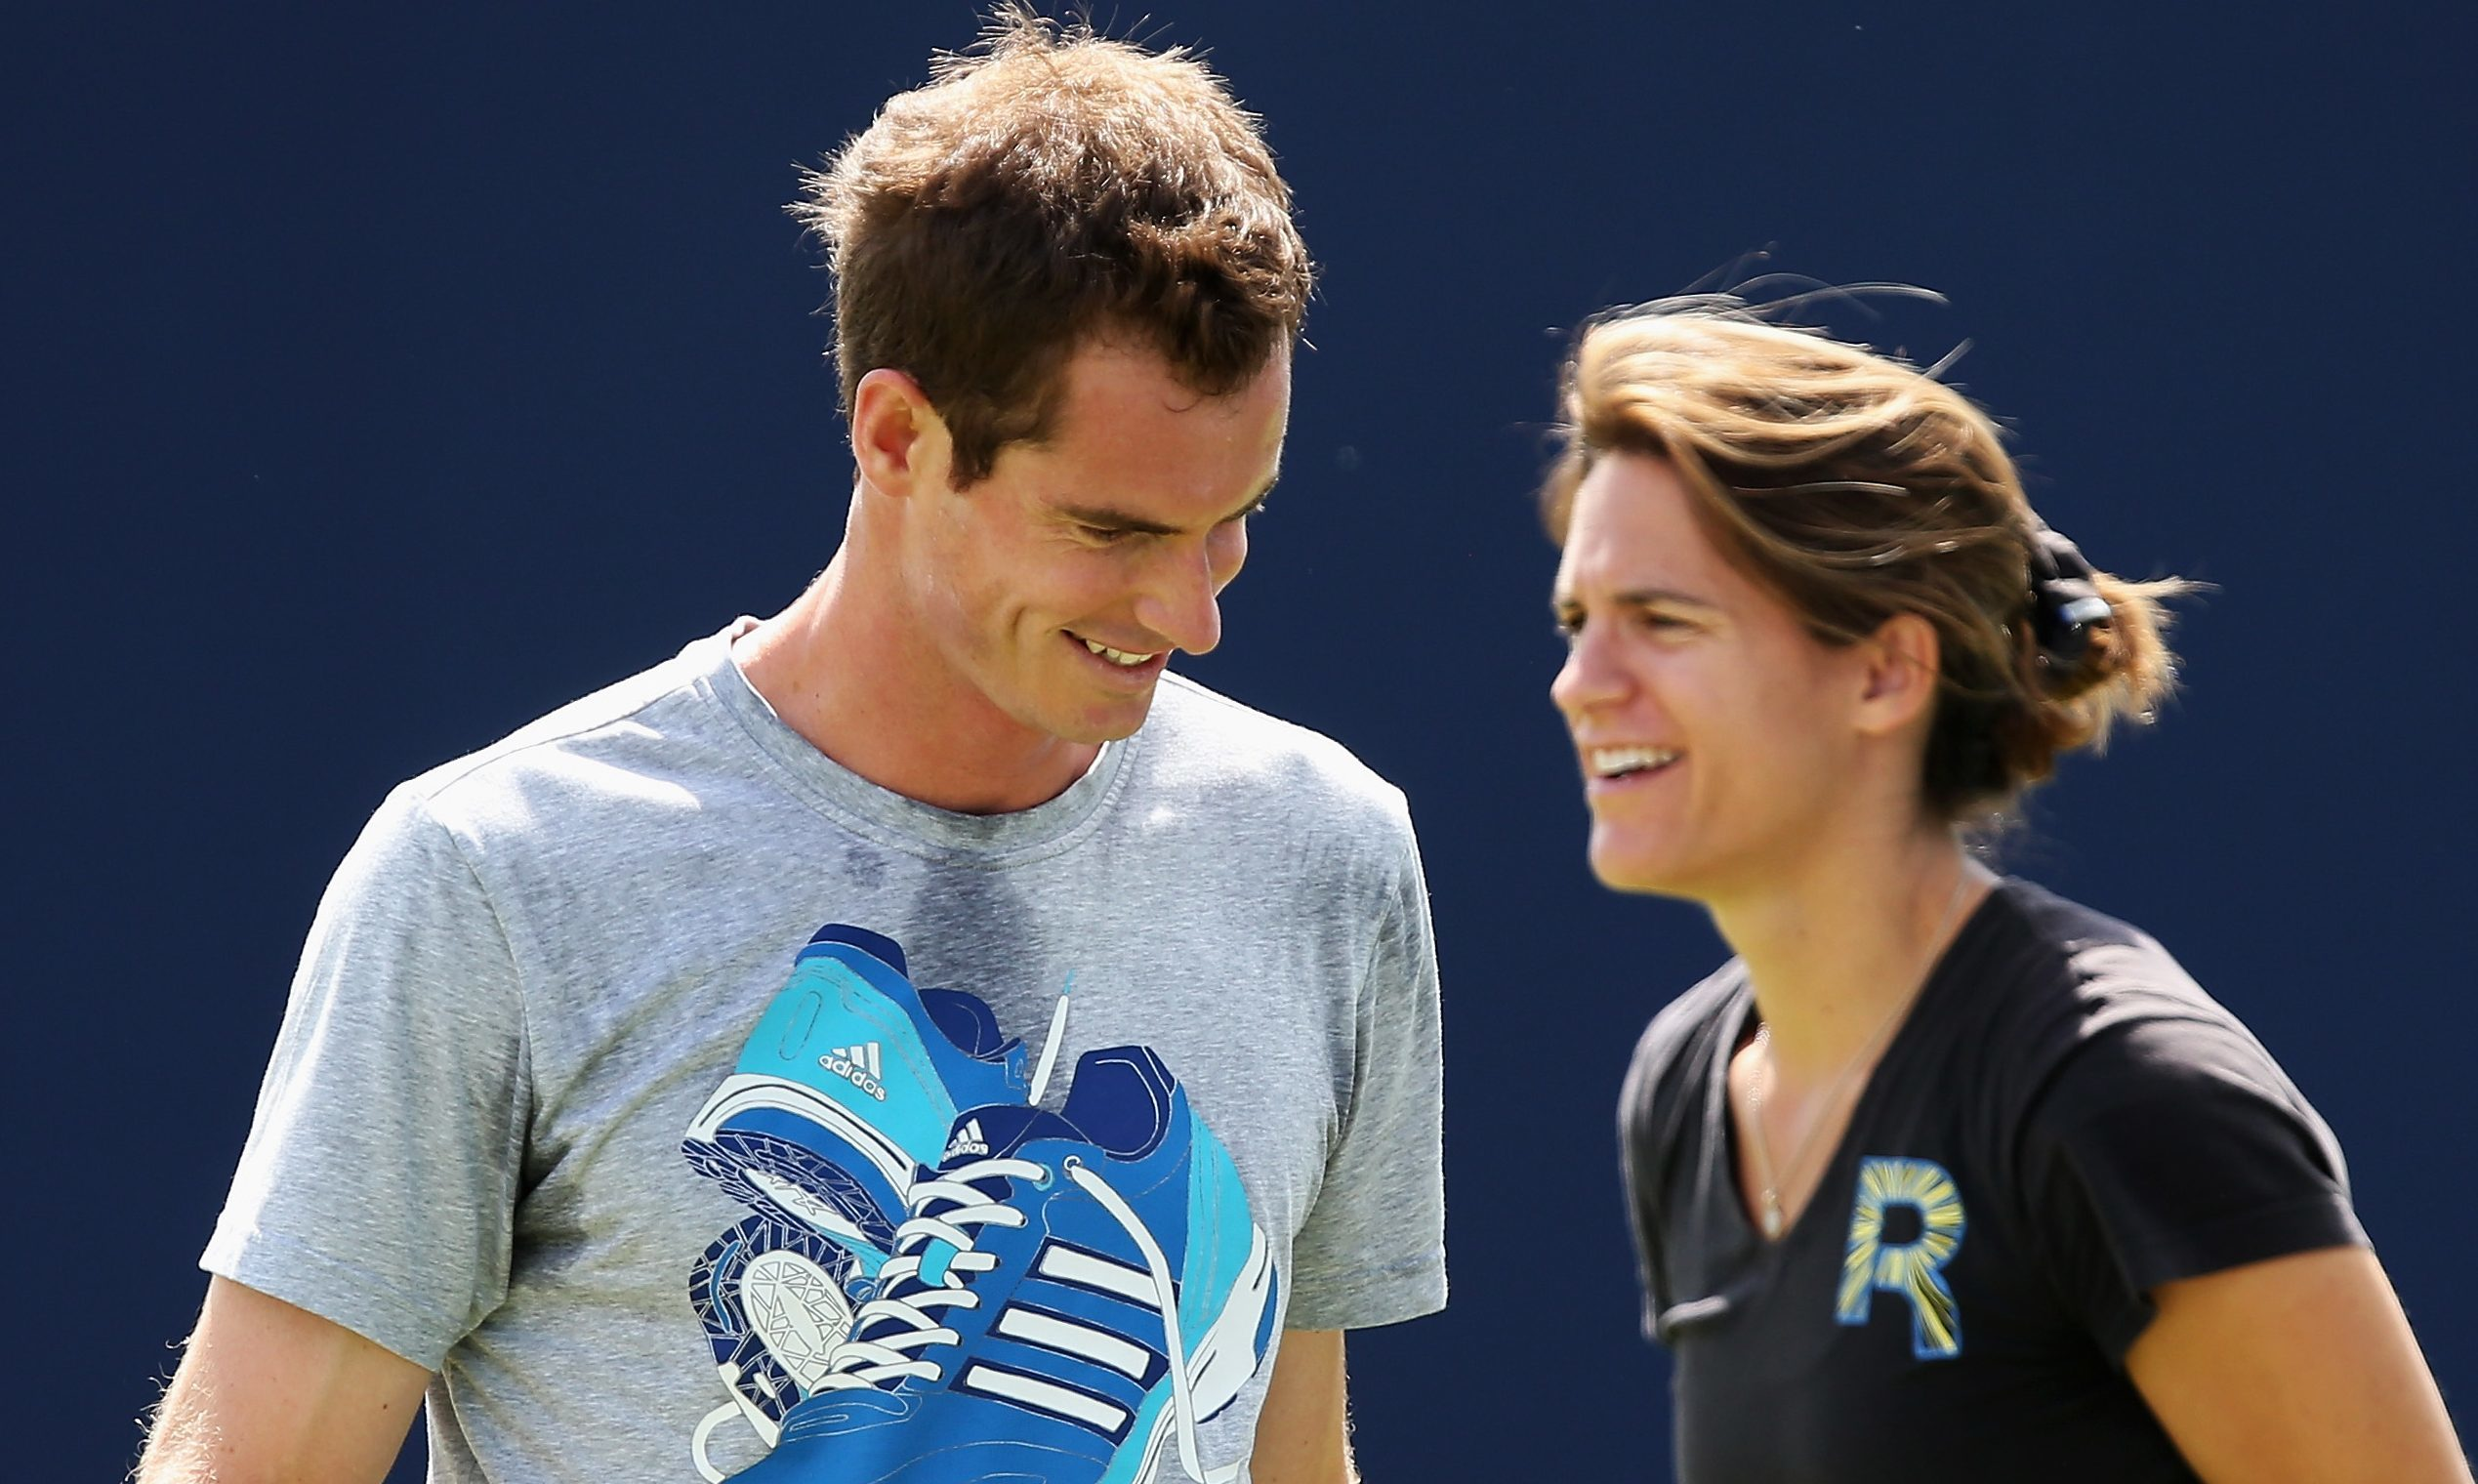 Andy Murray and Amelie Mauresmo.